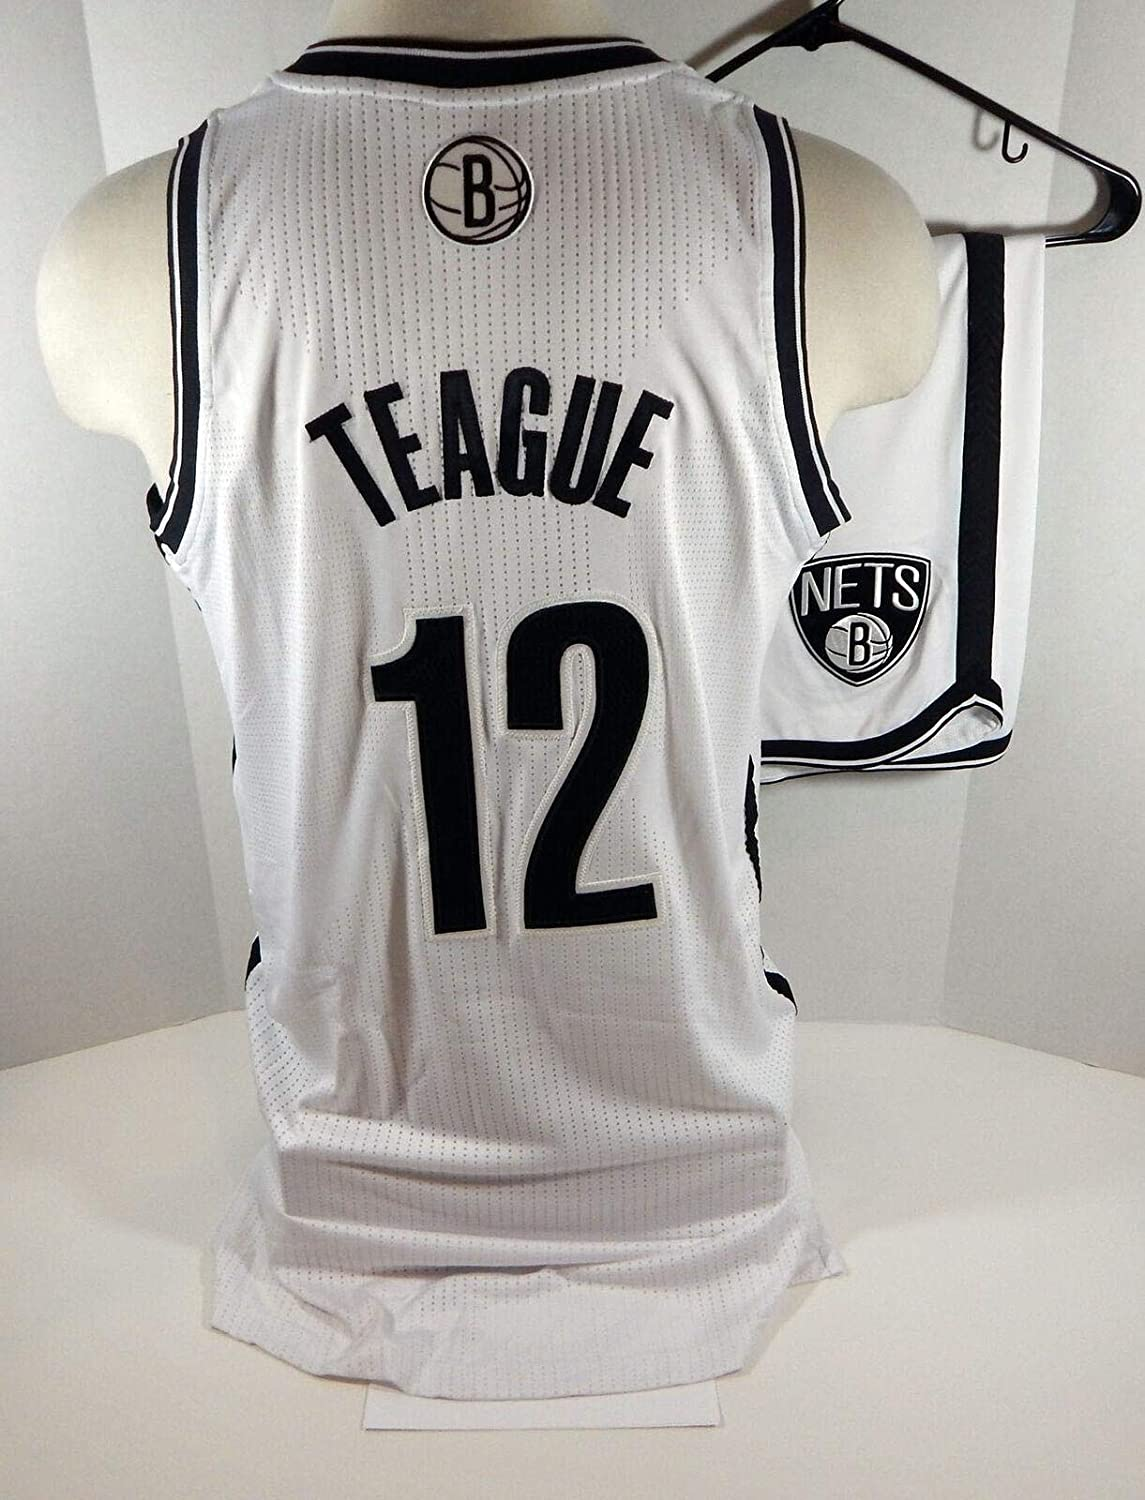 2013-14 Brooklyn Nets Marquis Teague #12 Game Issued White Jersey Shorts Rd 2 PS - NBA Game Used